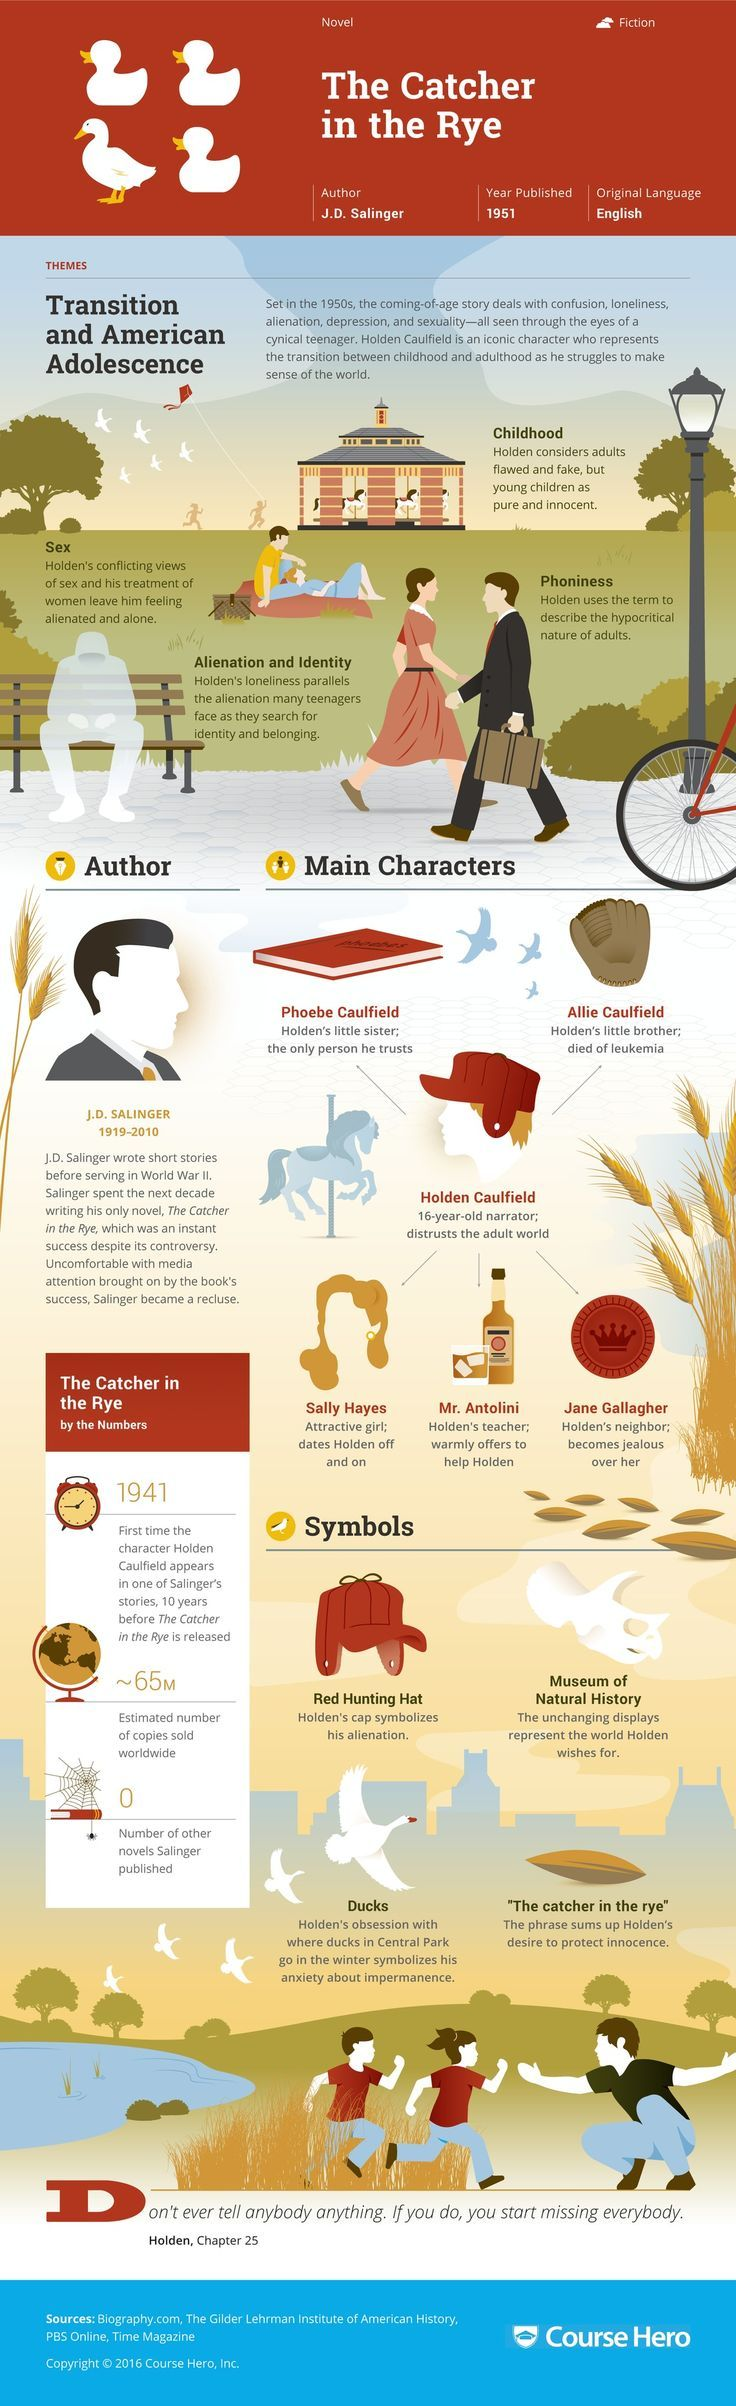 The Catcher in the Rye Infographic